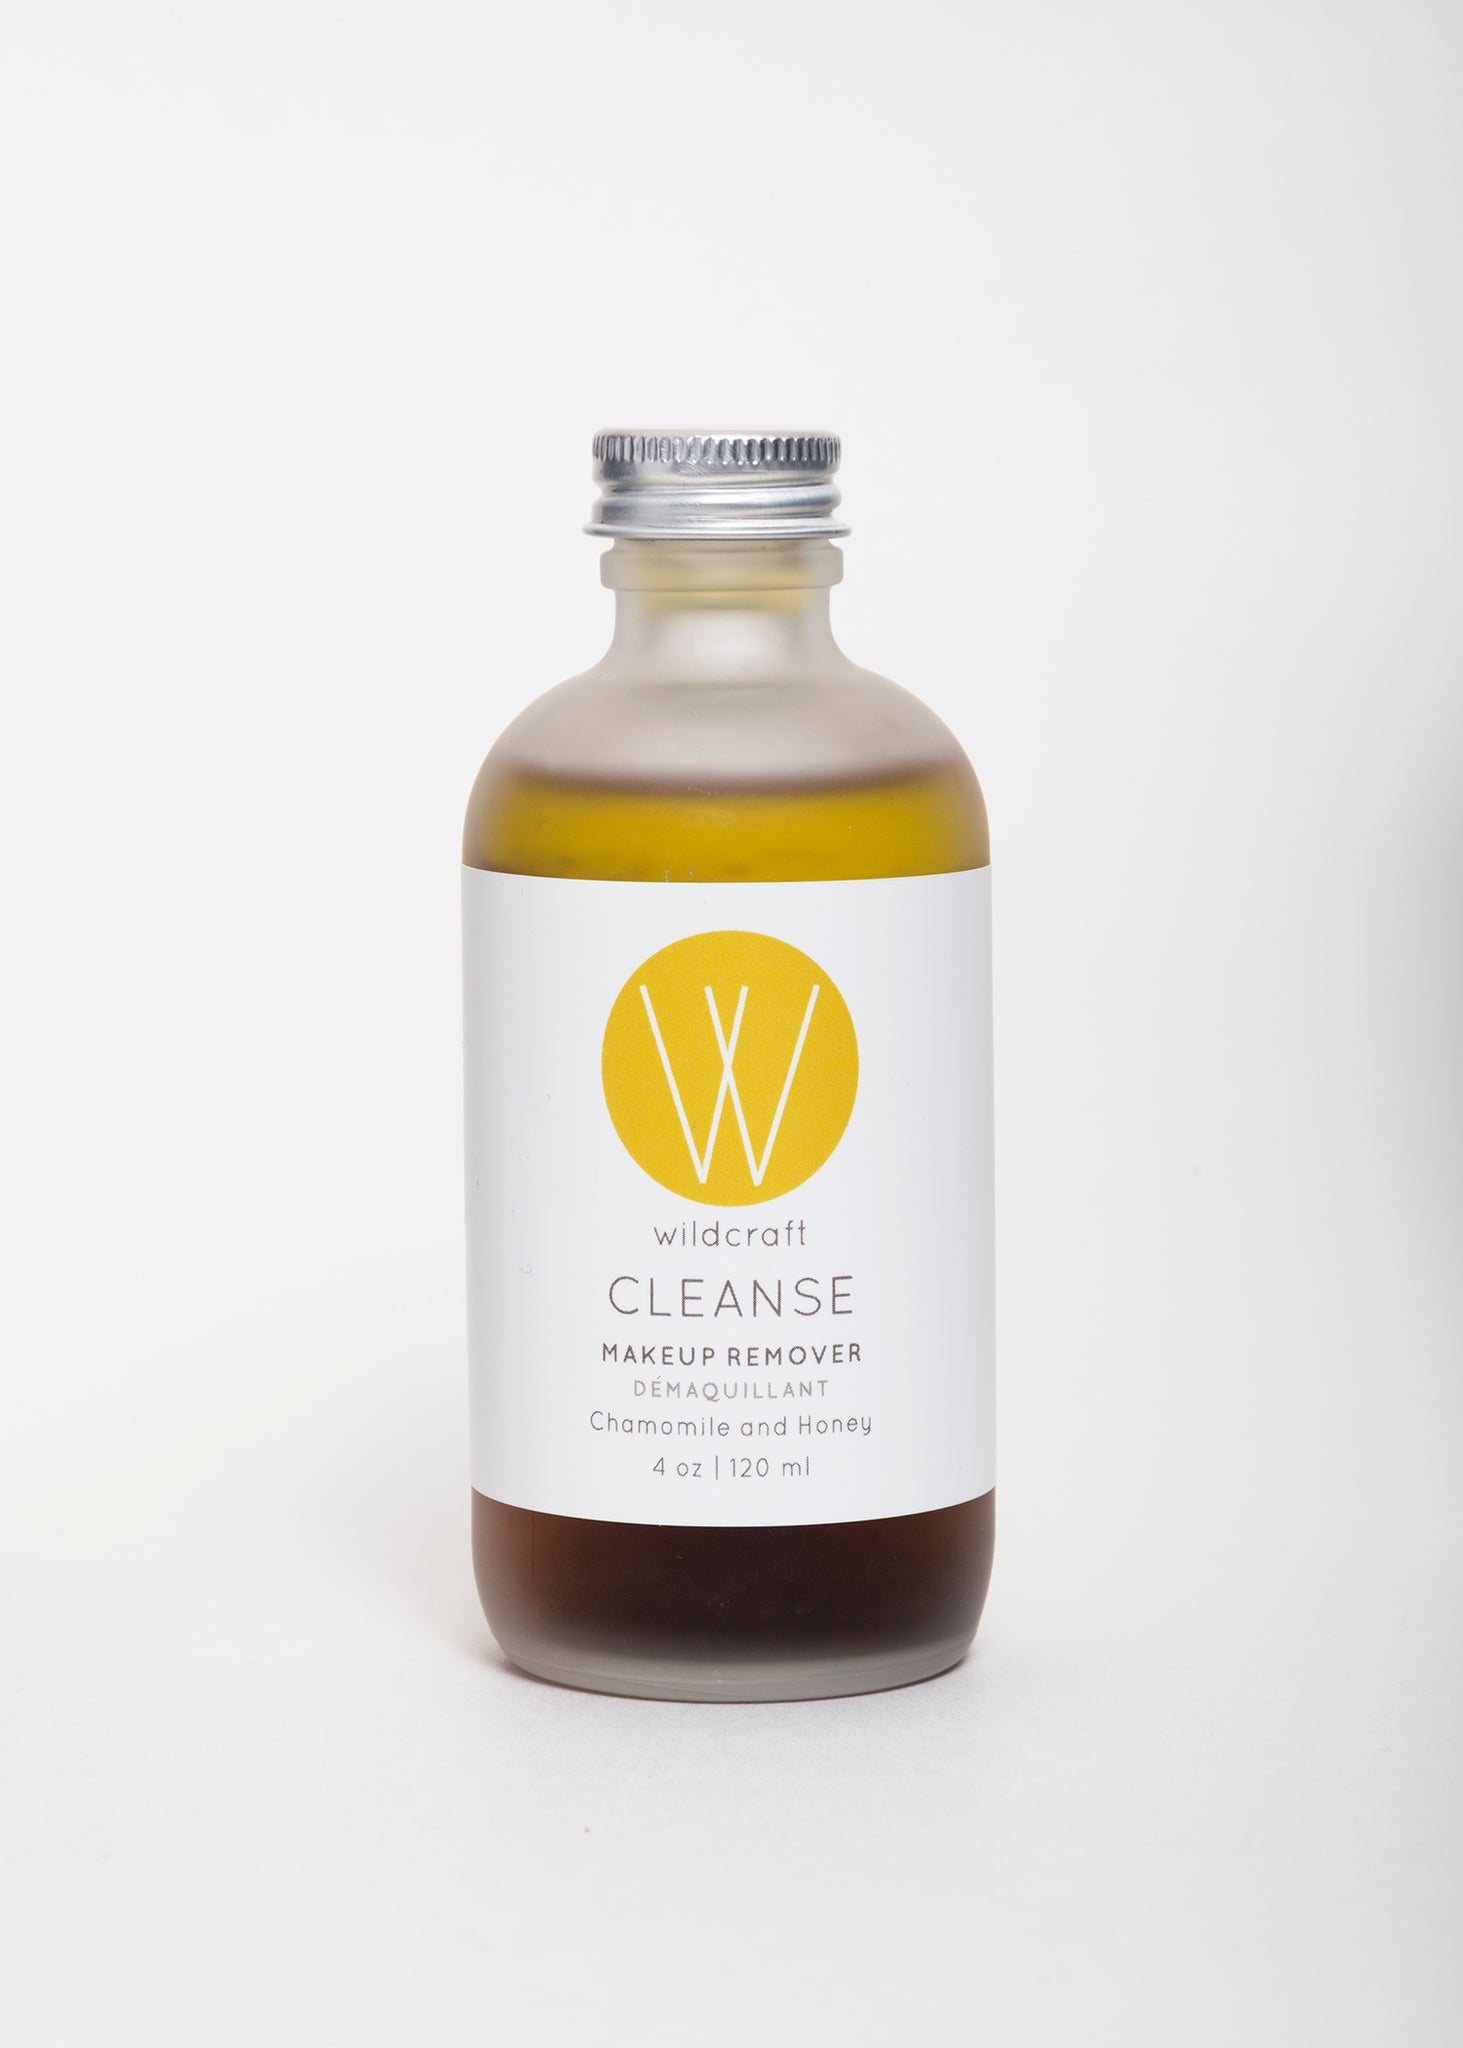 Makeup Remover - Chamomile and Honey by Wildcraft | Goodnight Beauty - natural skin care, cleanser, hydration, green beauty, cruelty free, organic, made in Canada